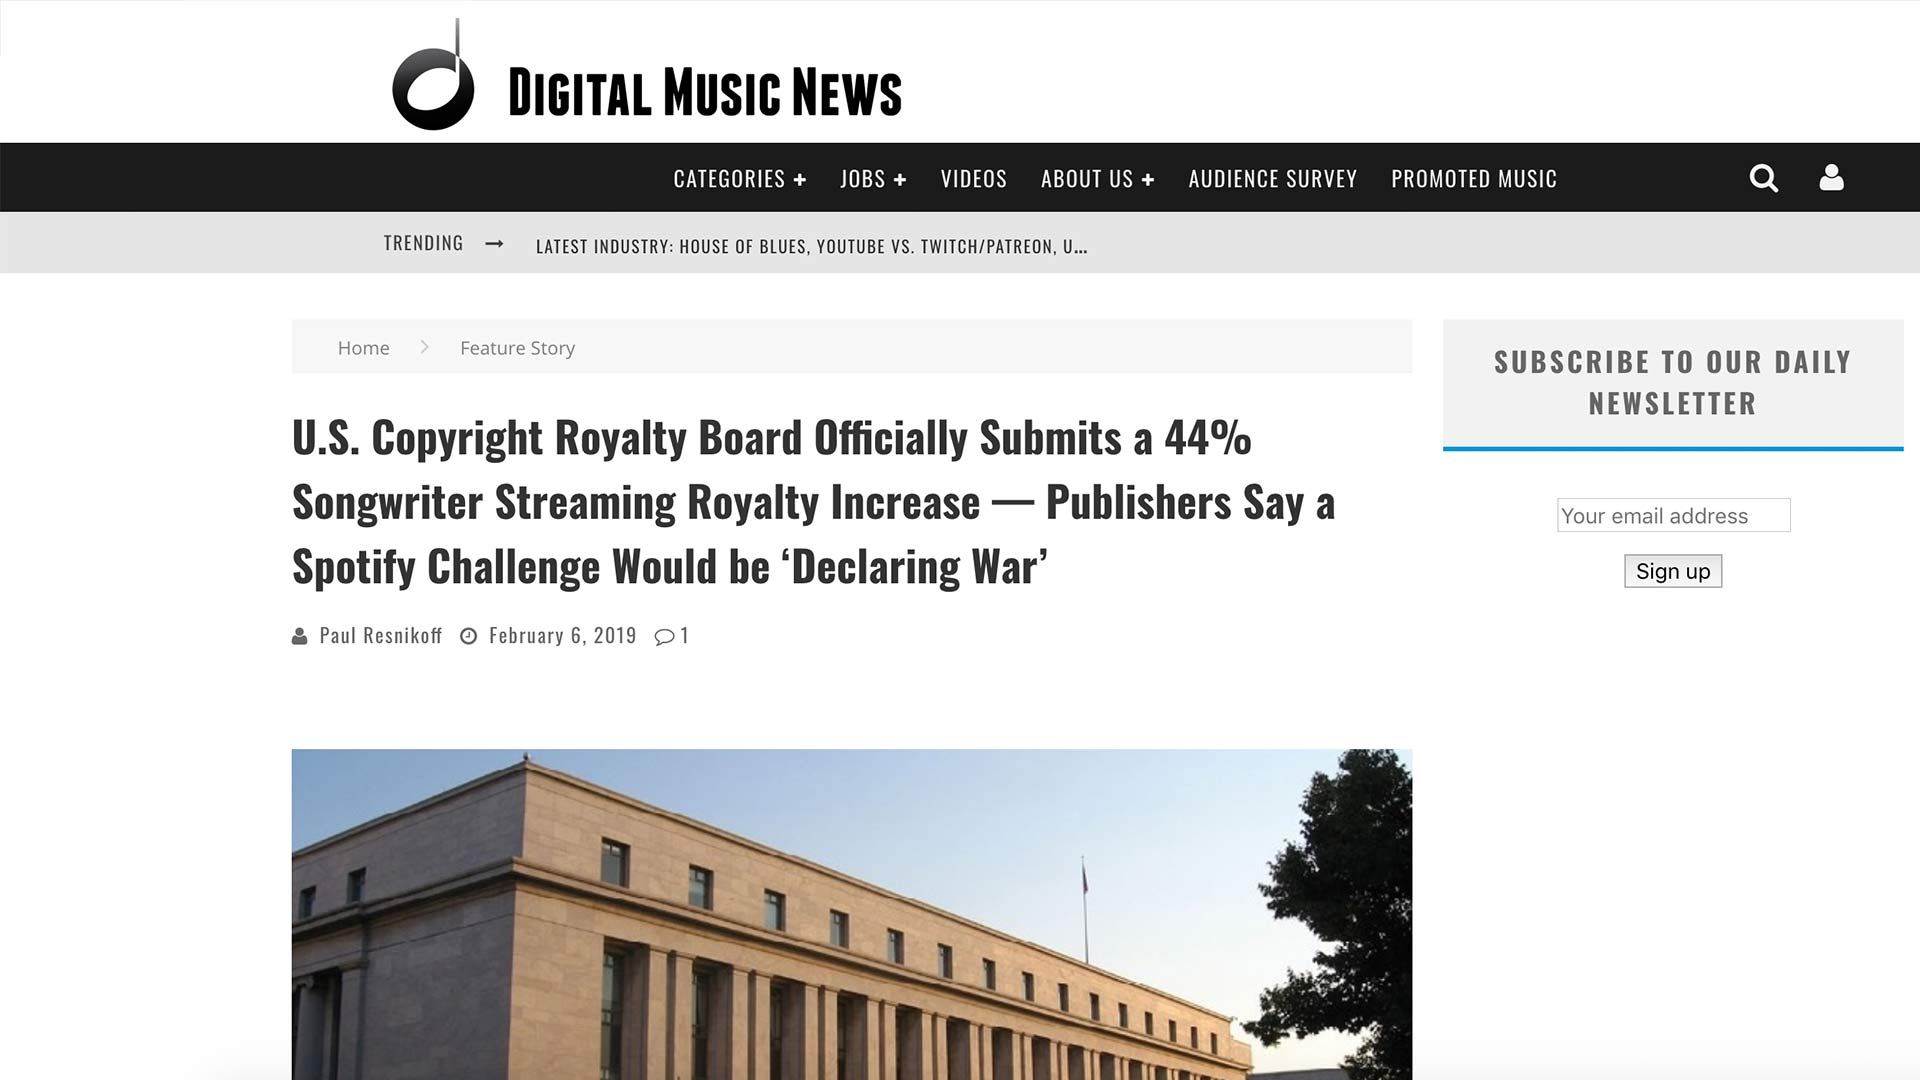 Fairness Rocks News U.S. Copyright Royalty Board Officially Submits a 44% Songwriter Streaming Royalty Increase — Publishers Say a Spotify Challenge Would be 'Declaring War'